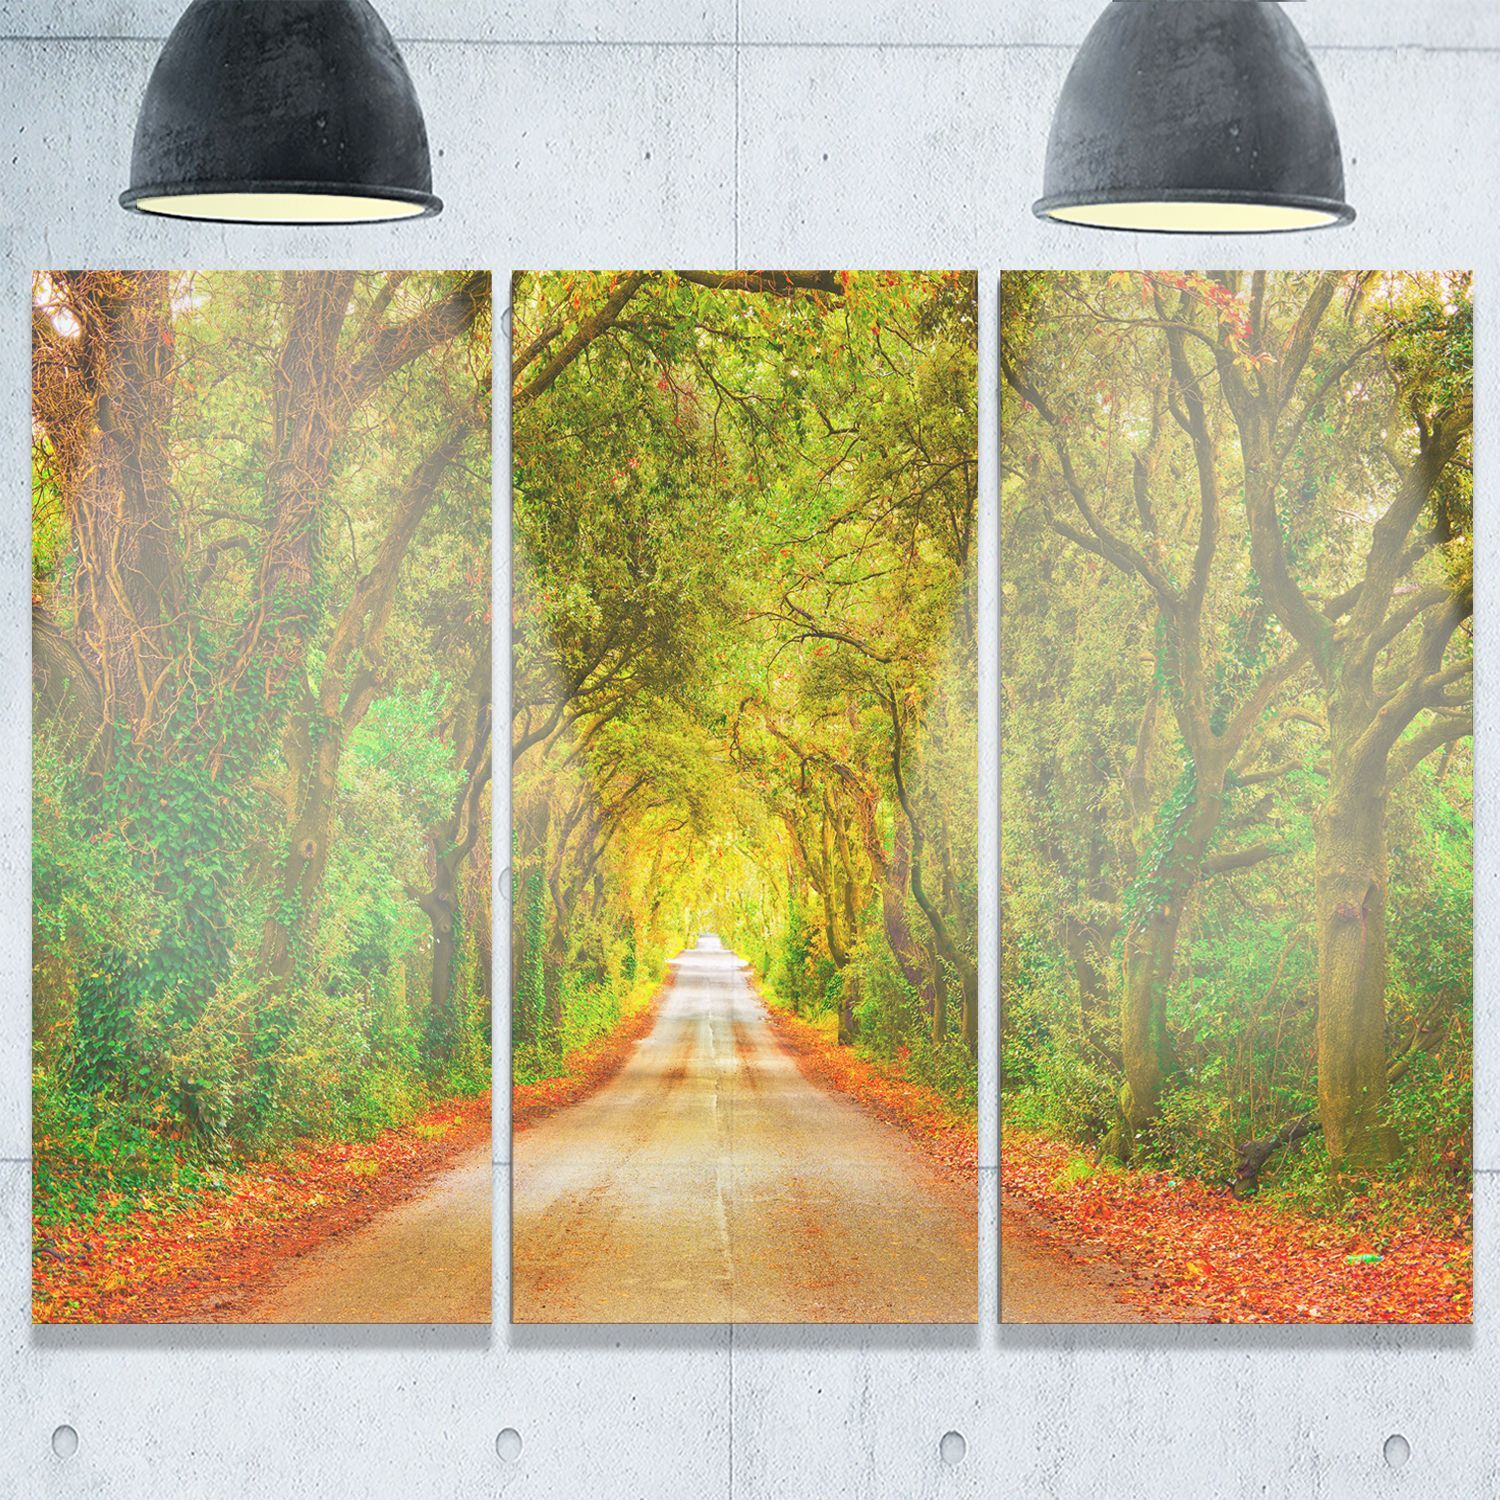 Fall ery and Road Straight Ahead - Oversized Forest Glossy Metal ...